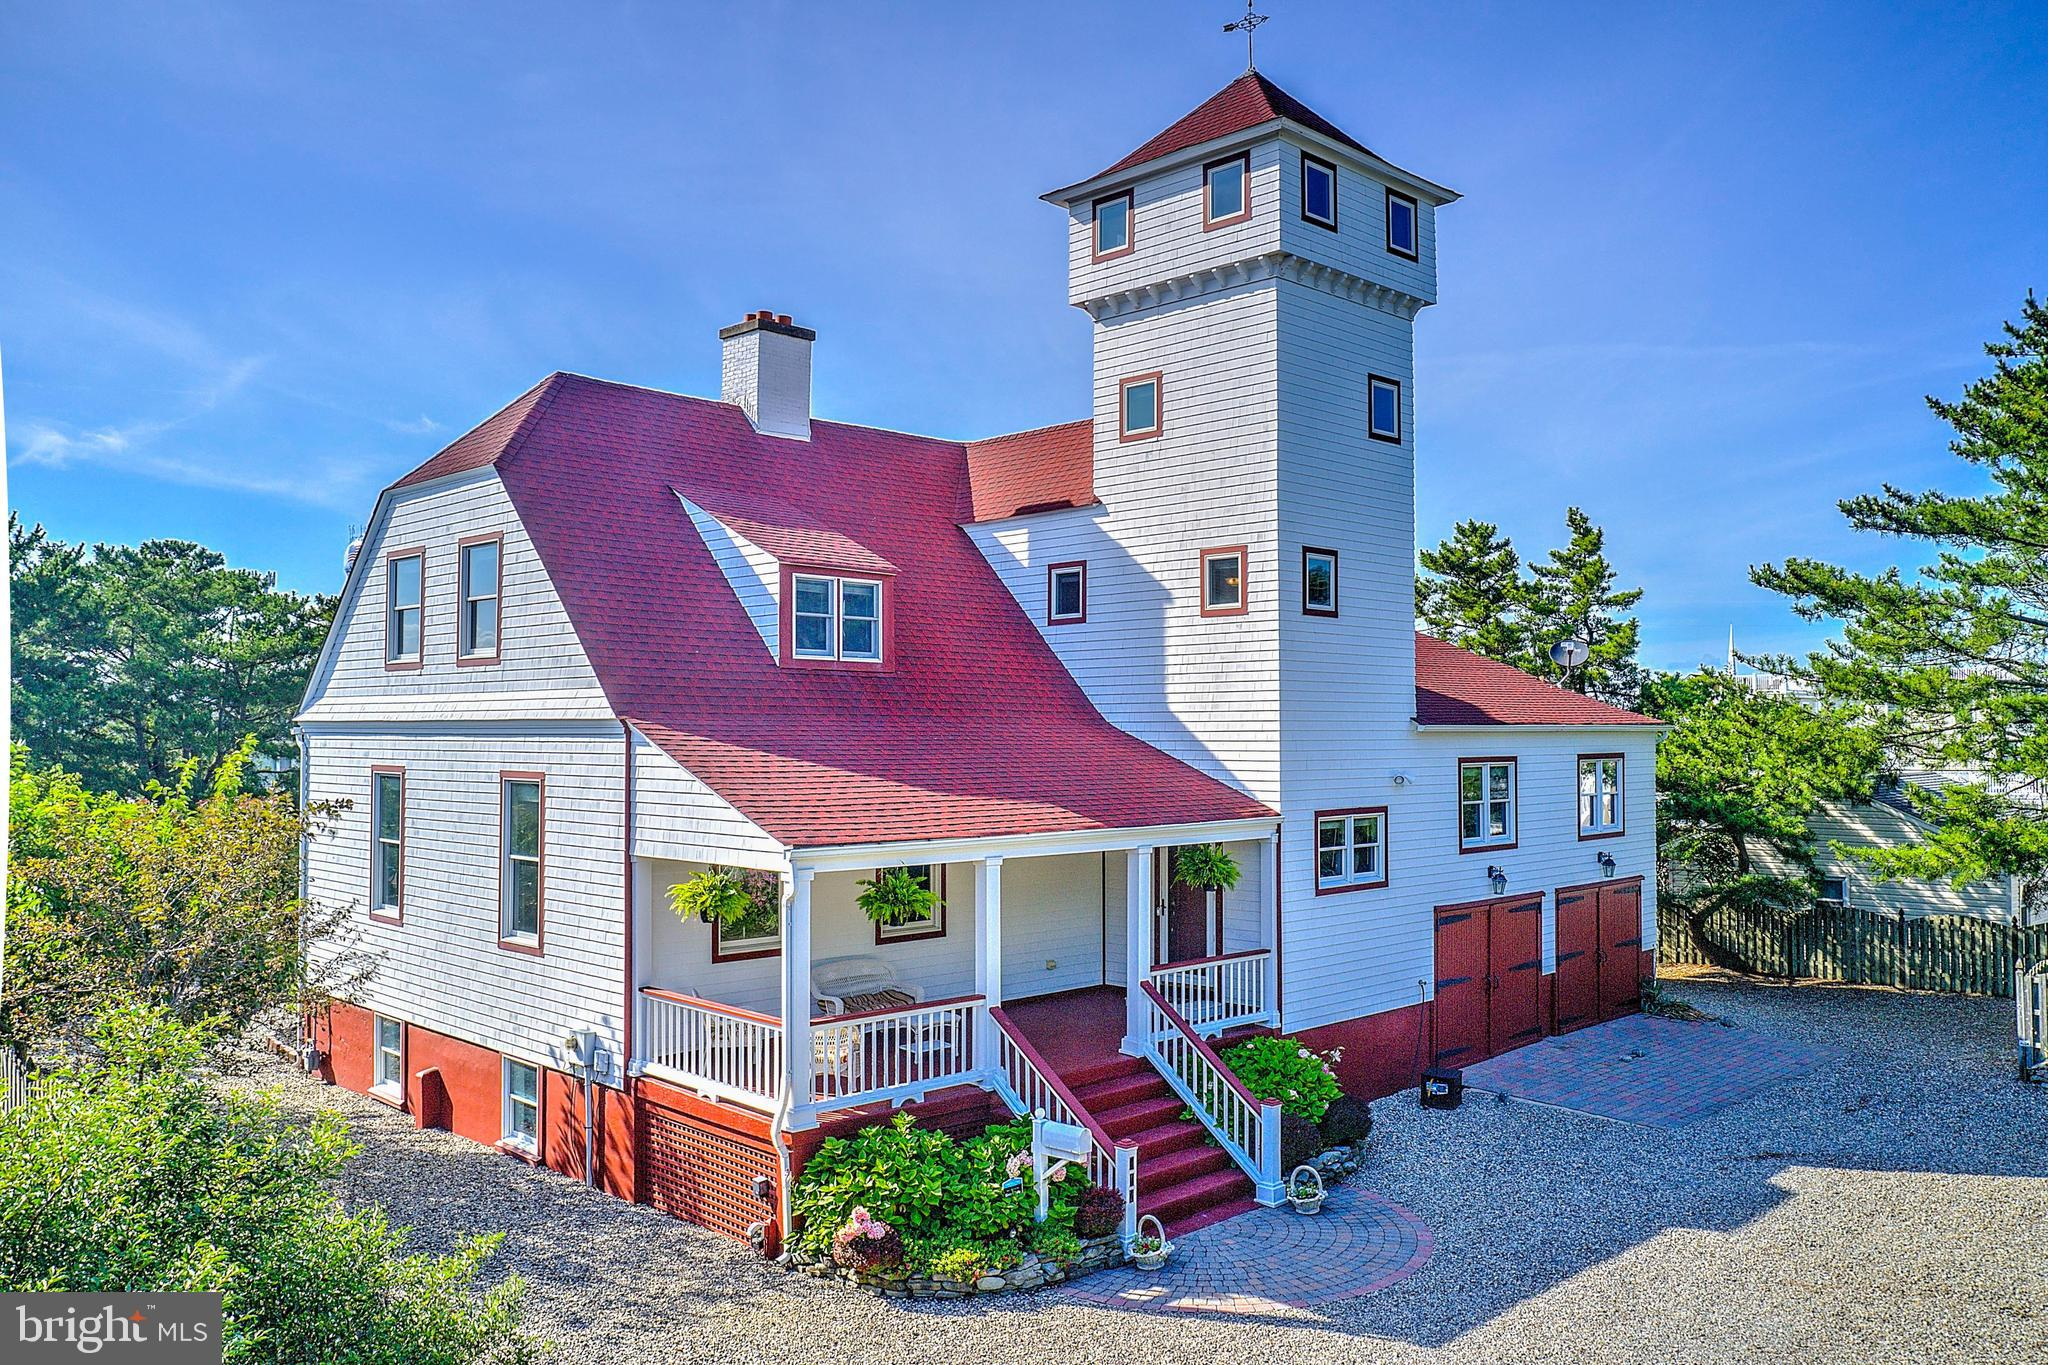 Welcome to one of the most unique and storied homes on Long Beach Island. 117 E Maryland Ave is a ra